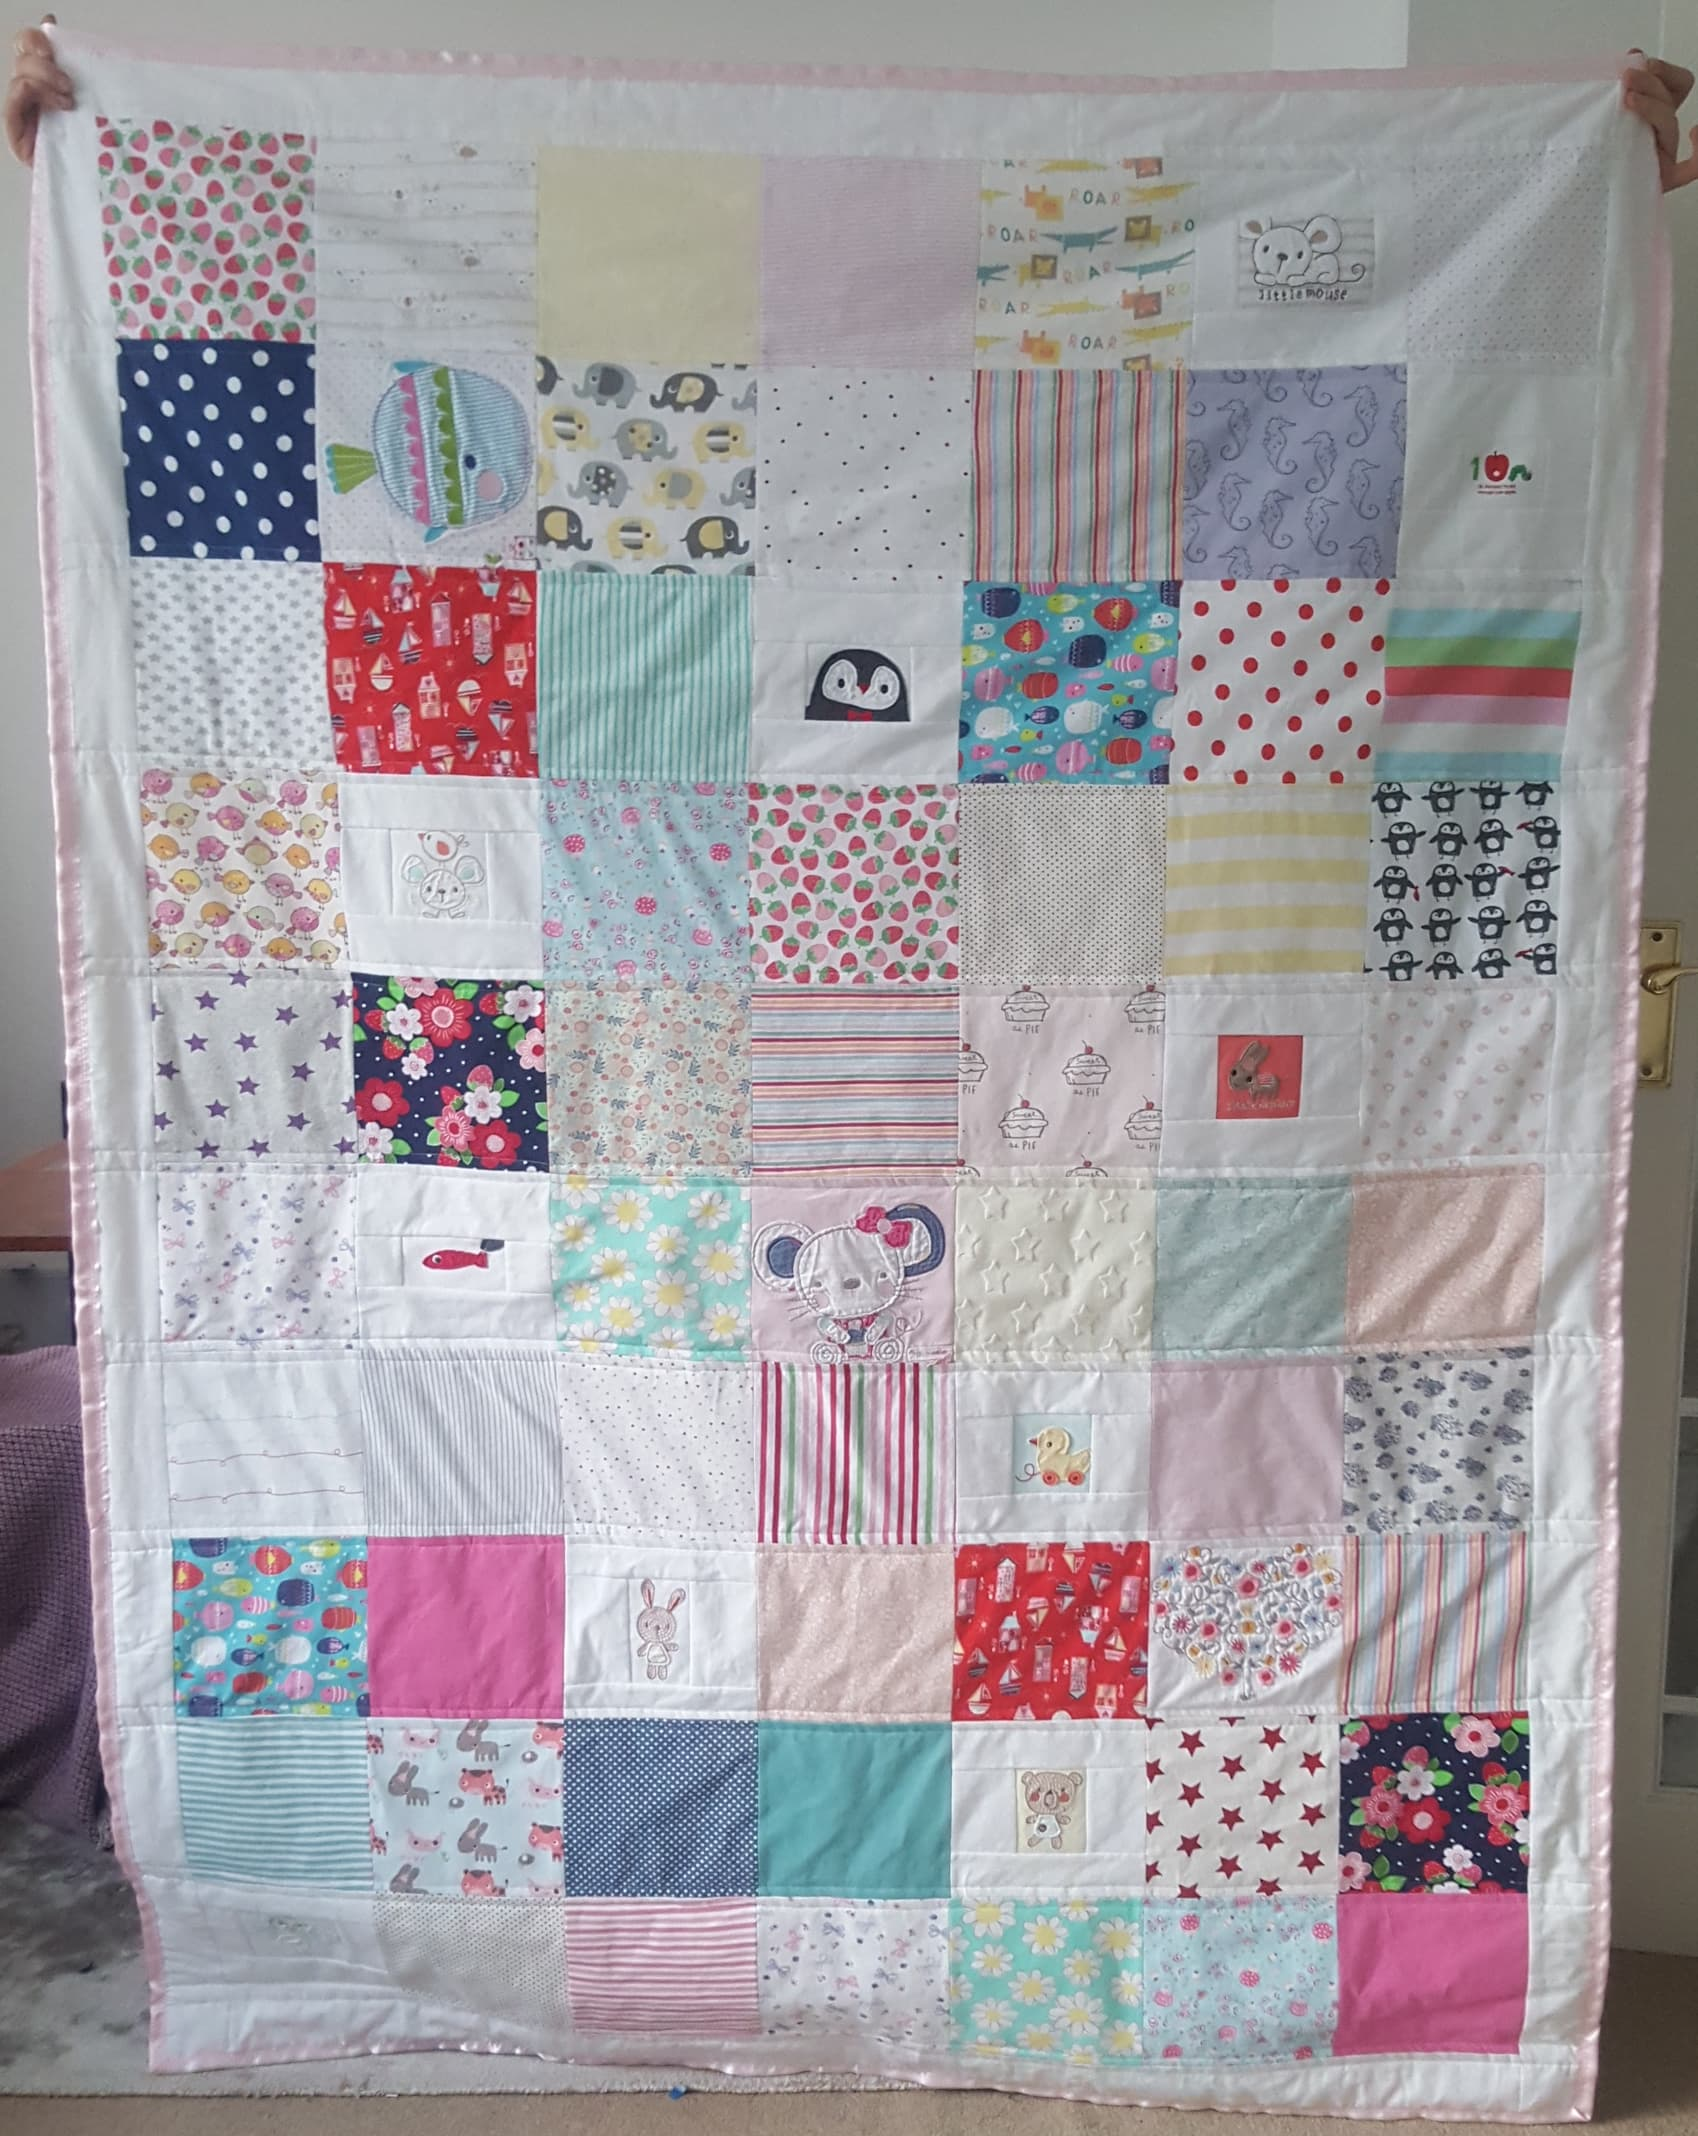 The finished quilt!